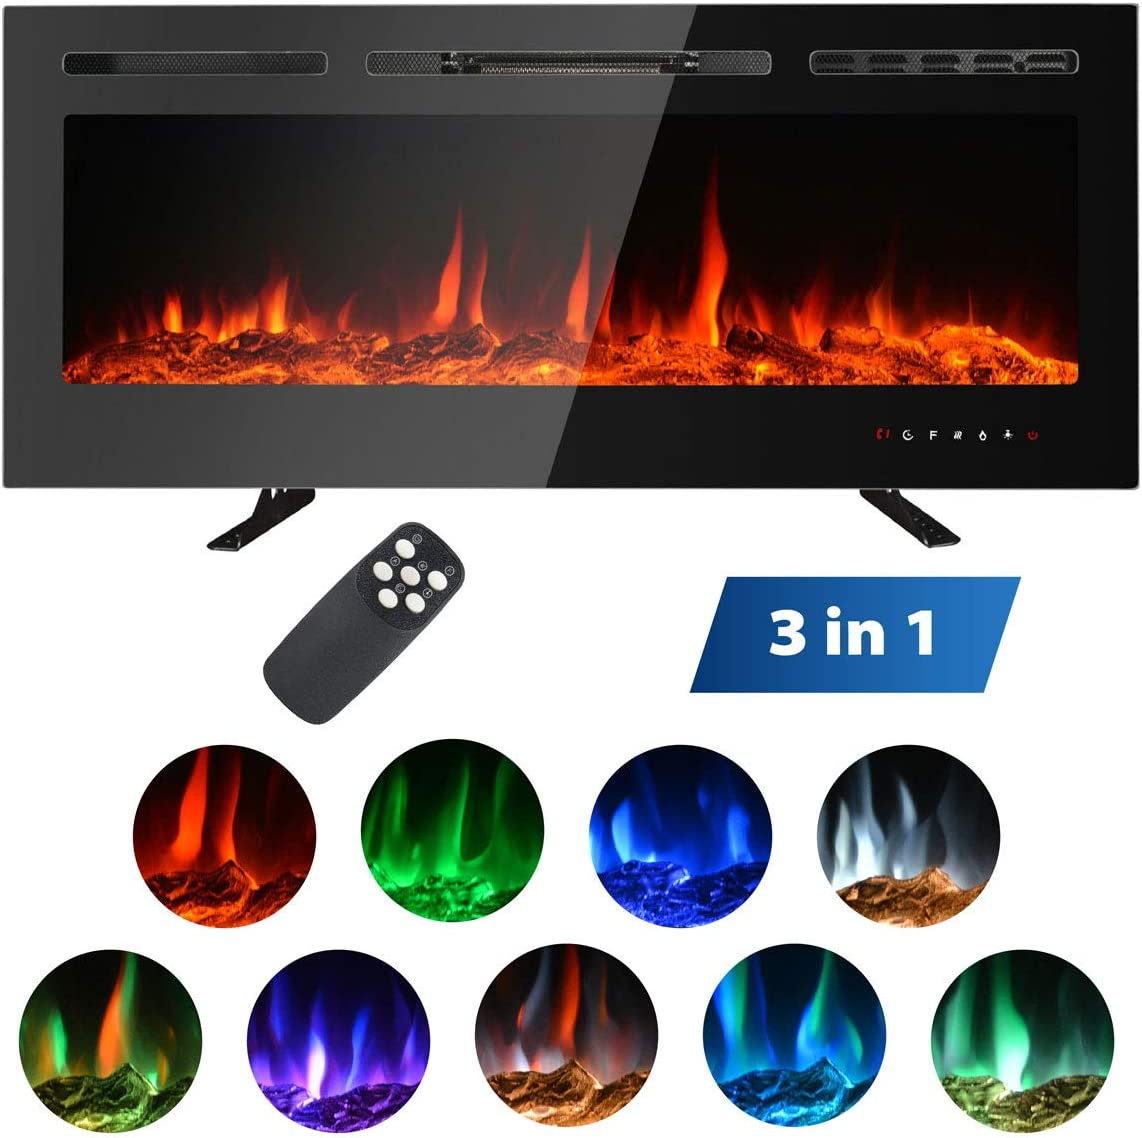 Faux Fire Log /& Crystal Options MAXXPRIME 40 Electric Fireplace Free Standing 9 Flamer Color 750//1500W Recessed and Wall Mounted Fireplace Insert Heater with Touch Screen Control Panel